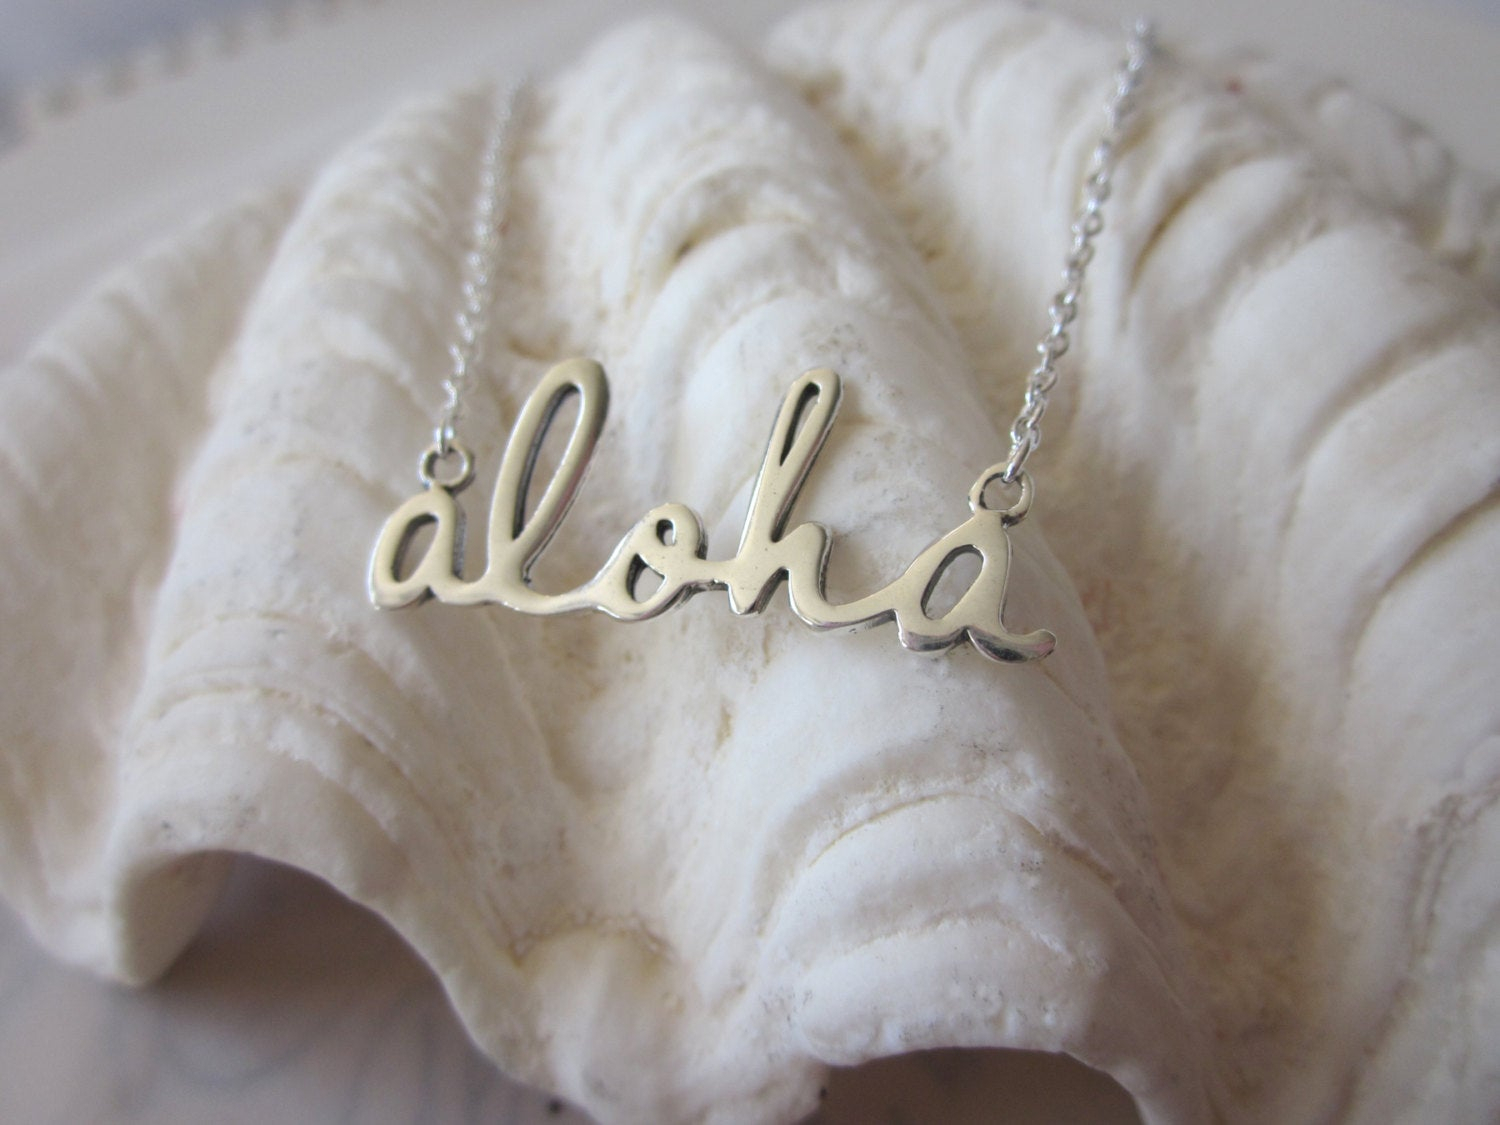 Script Aloha Necklace – Silver With Regard To Most Current Loved Script Necklaces (View 18 of 25)